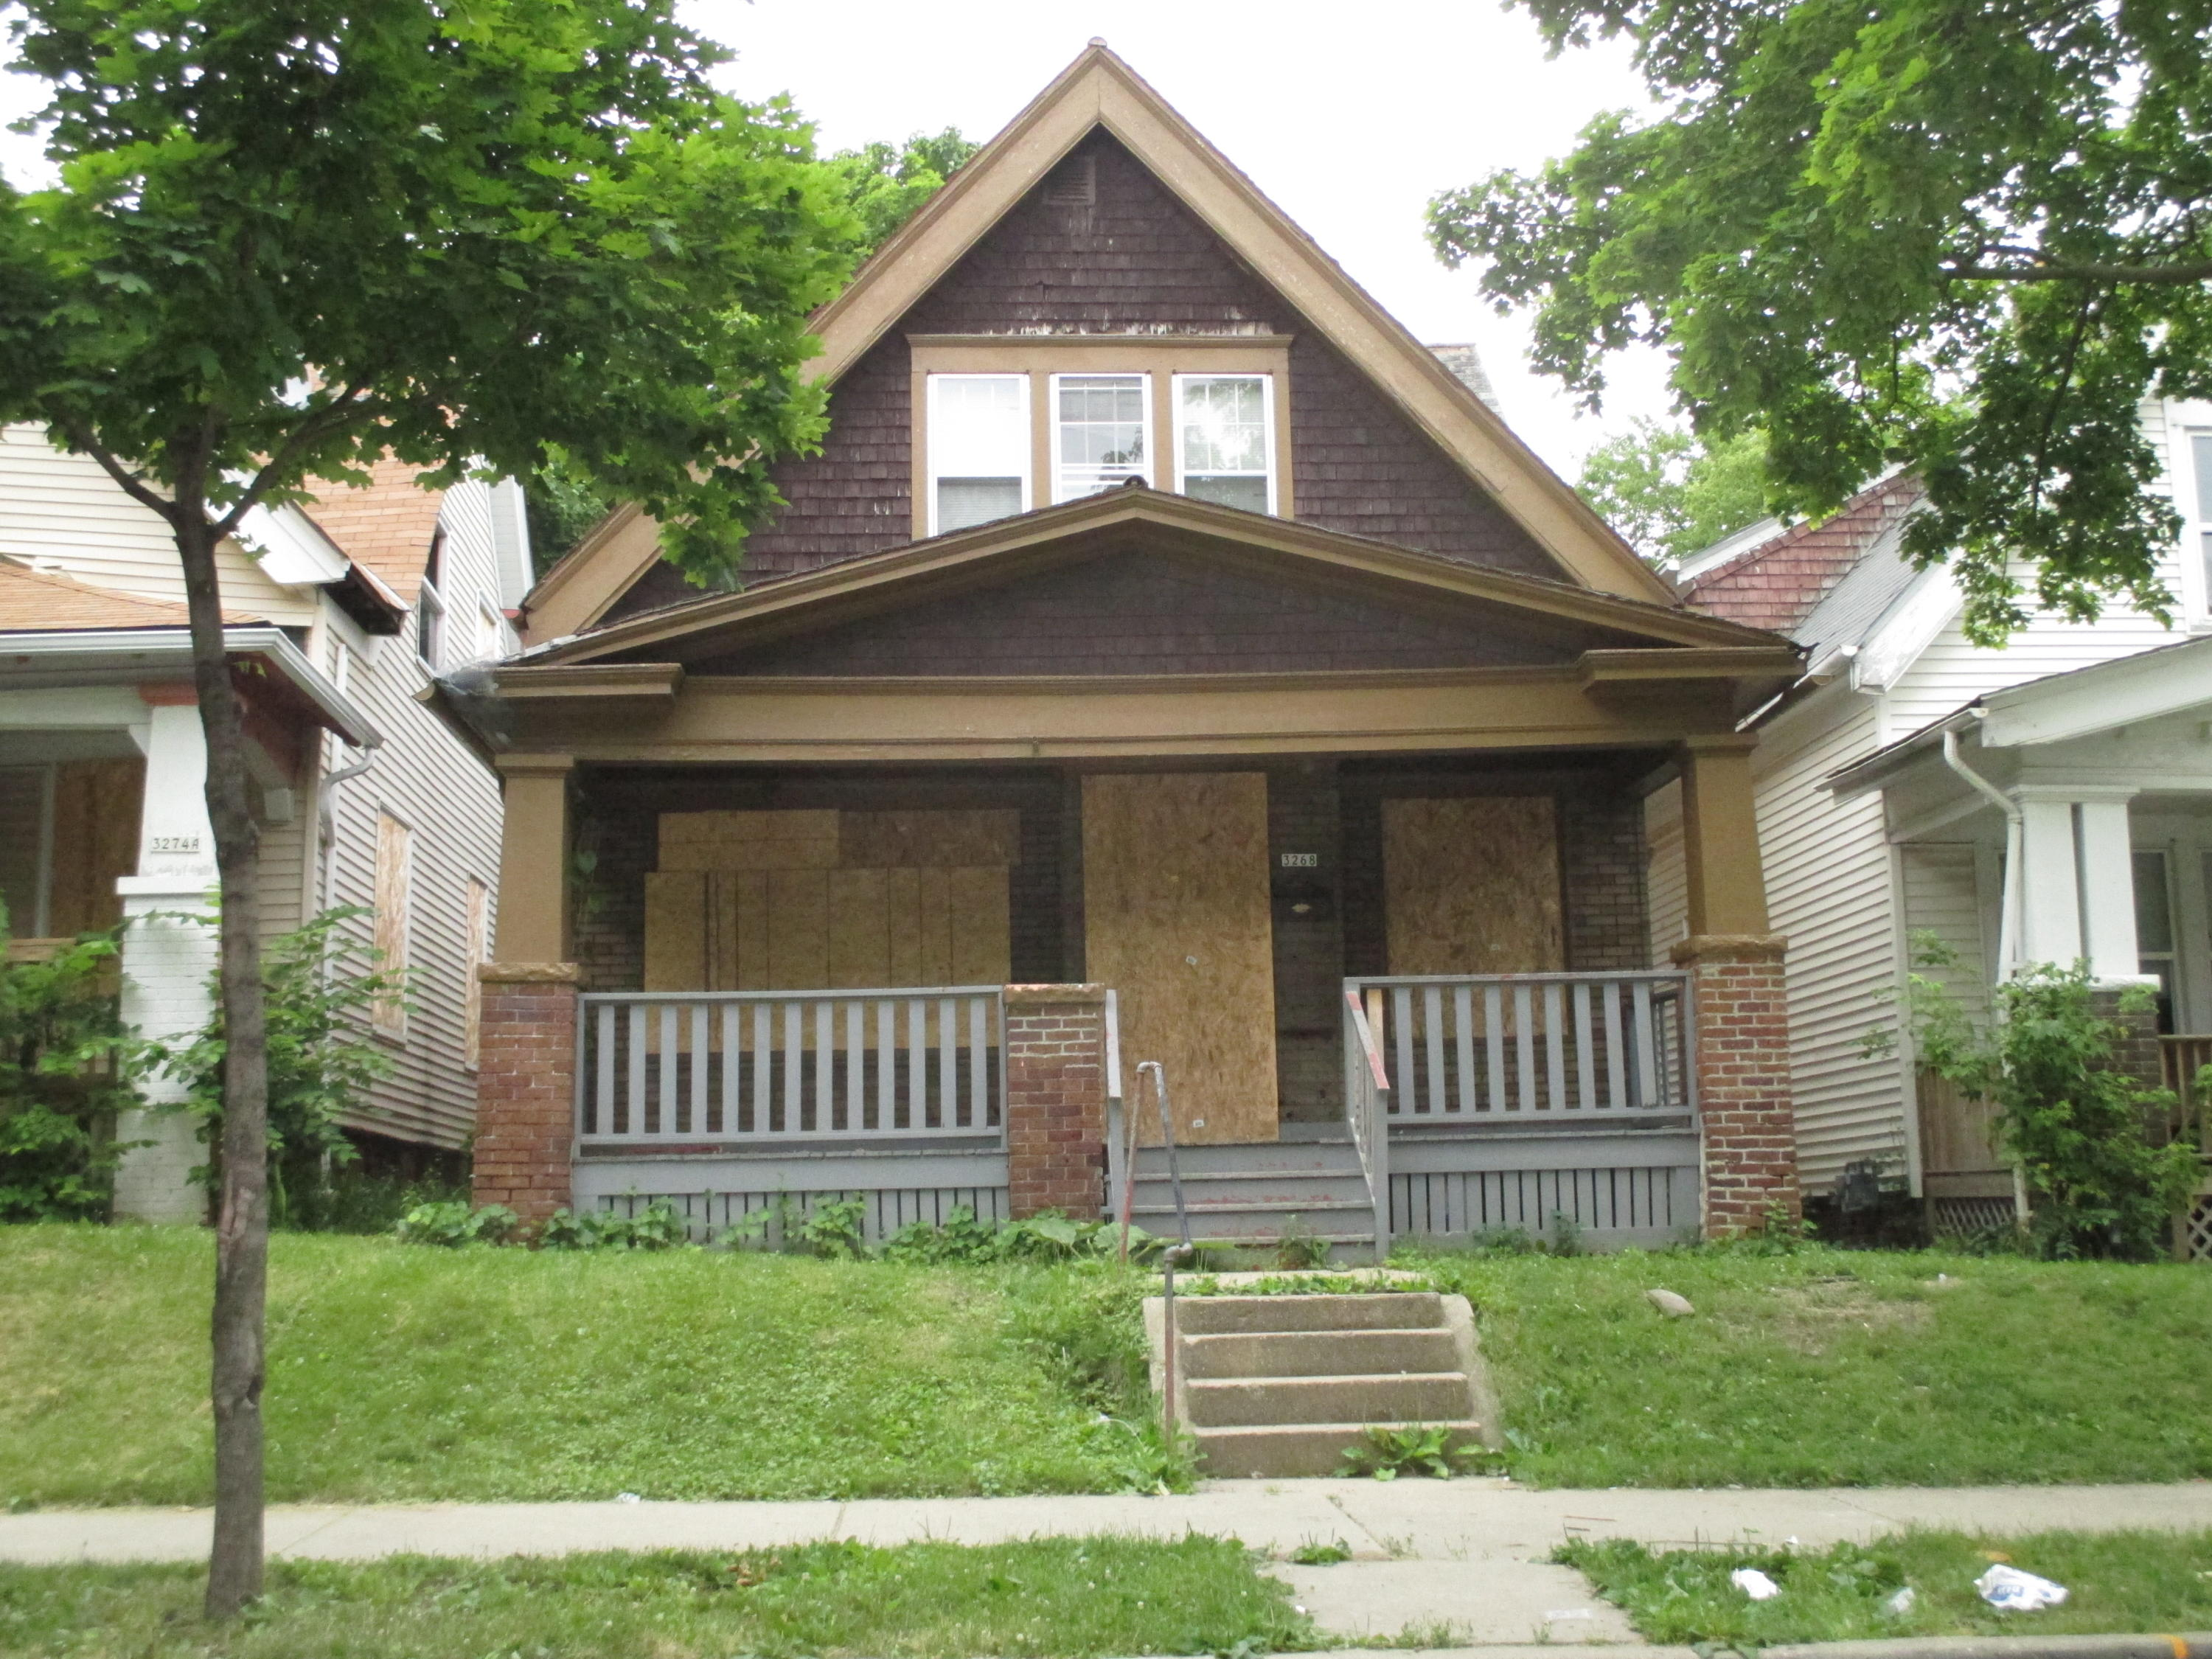 3268 29th St, Milwaukee, Wisconsin 53216, 5 Bedrooms Bedrooms, 10 Rooms Rooms,2 BathroomsBathrooms,Single-Family,For Sale,29th St,1676983